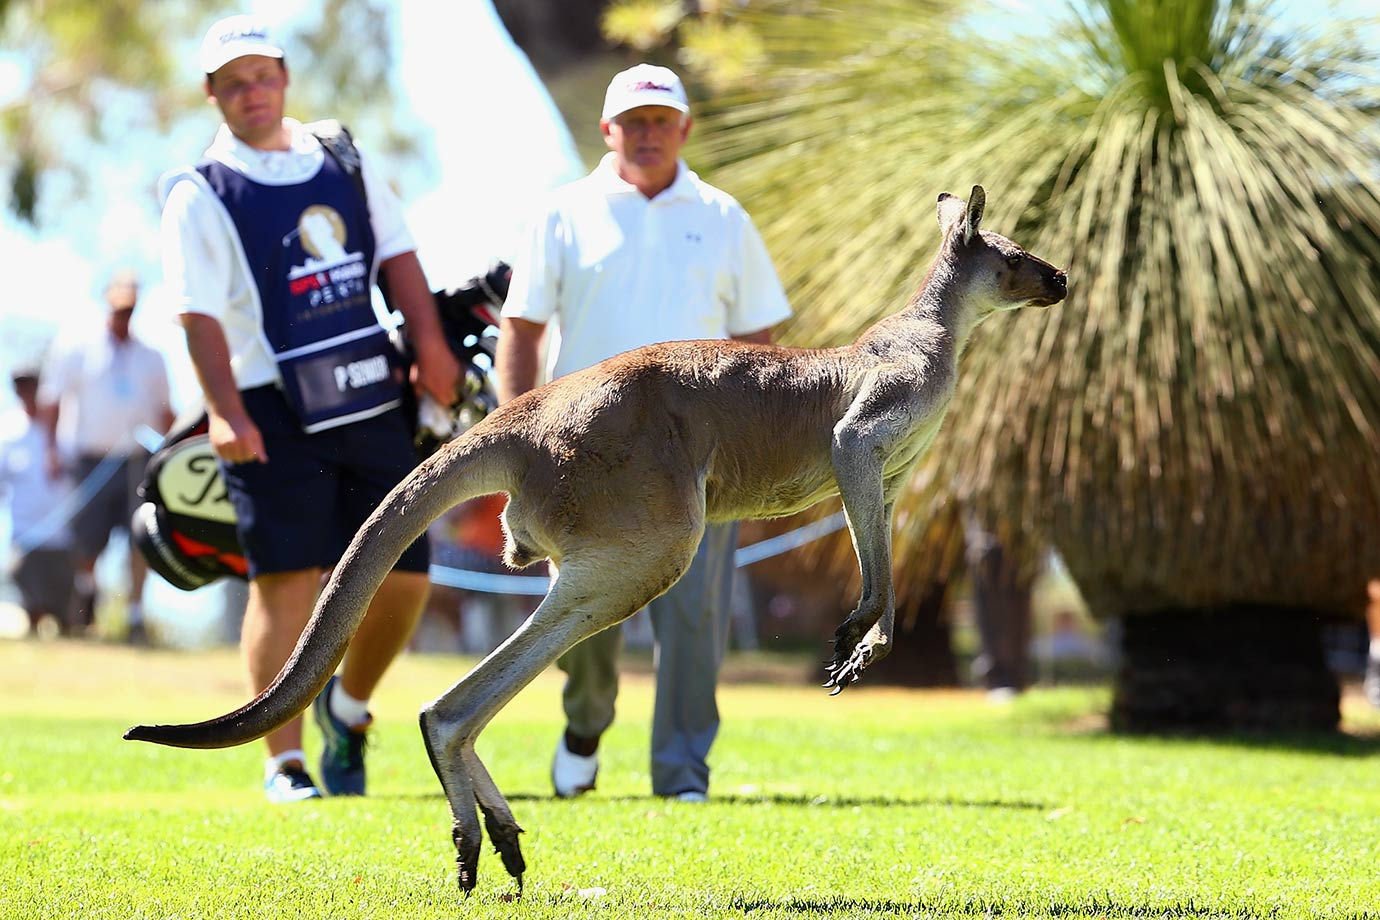 A large kangaroo jumps across the 10th fairway in front of Peter Senior during day two of the 2016 Perth International at Karrinyup GC in Perth, Australia.